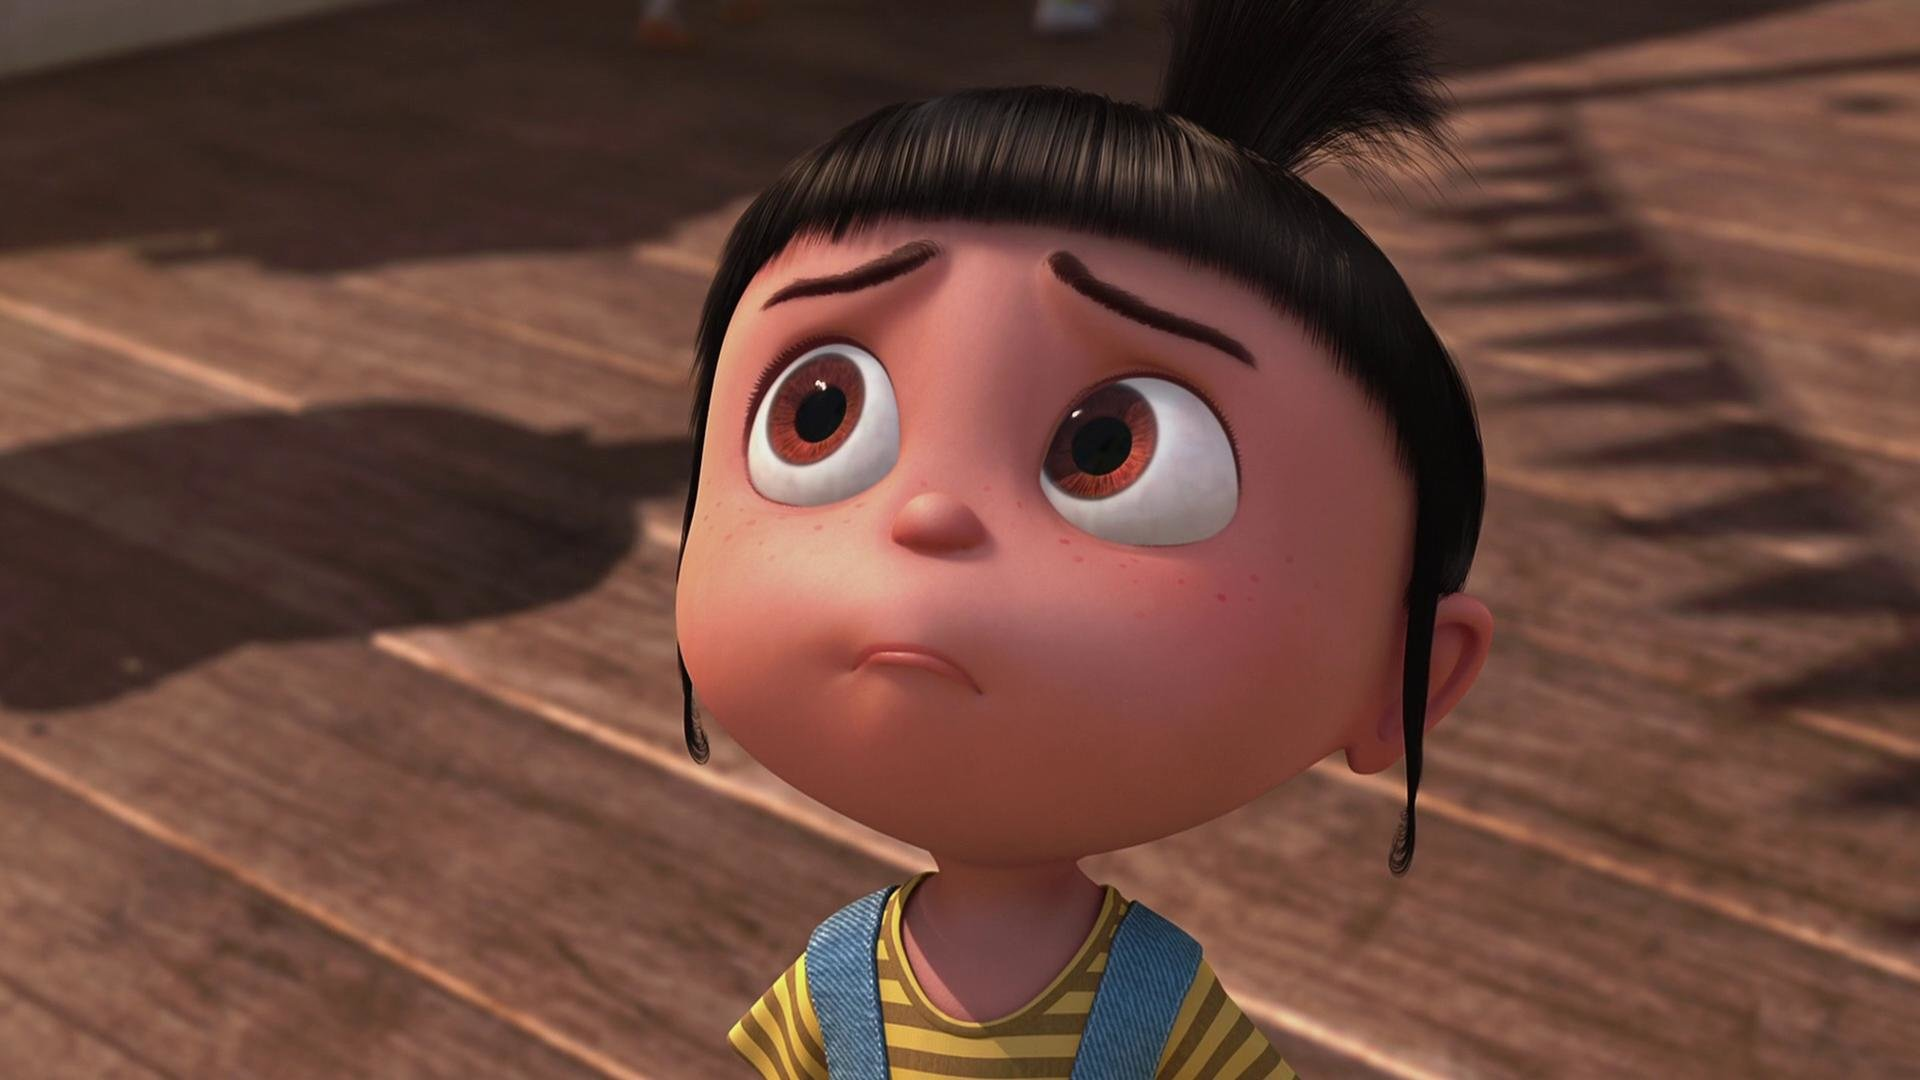 High resolution Agnes (Despicable Me) full hd 1920x1080 wallpaper ID:408063 for PC